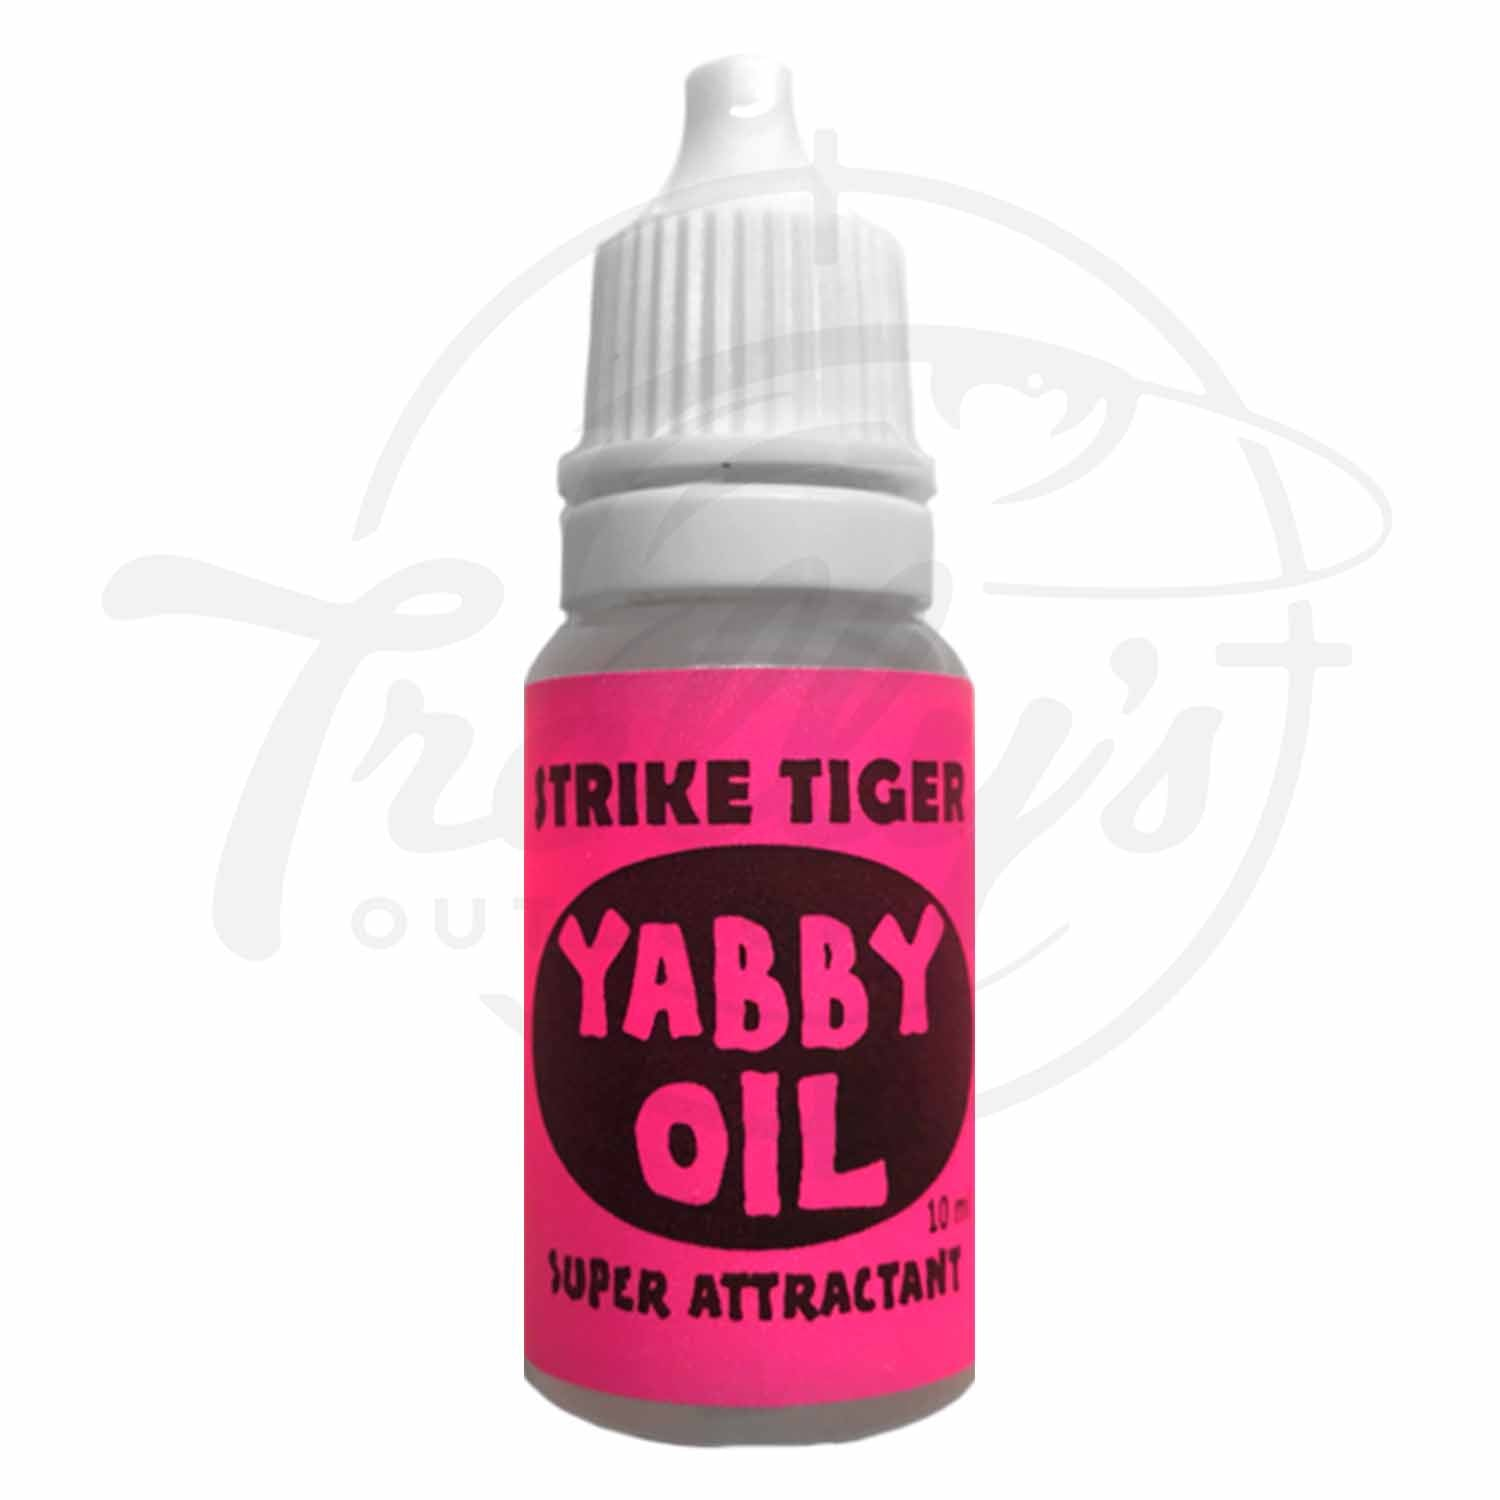 Strike Tiger Oil Bait Attractant